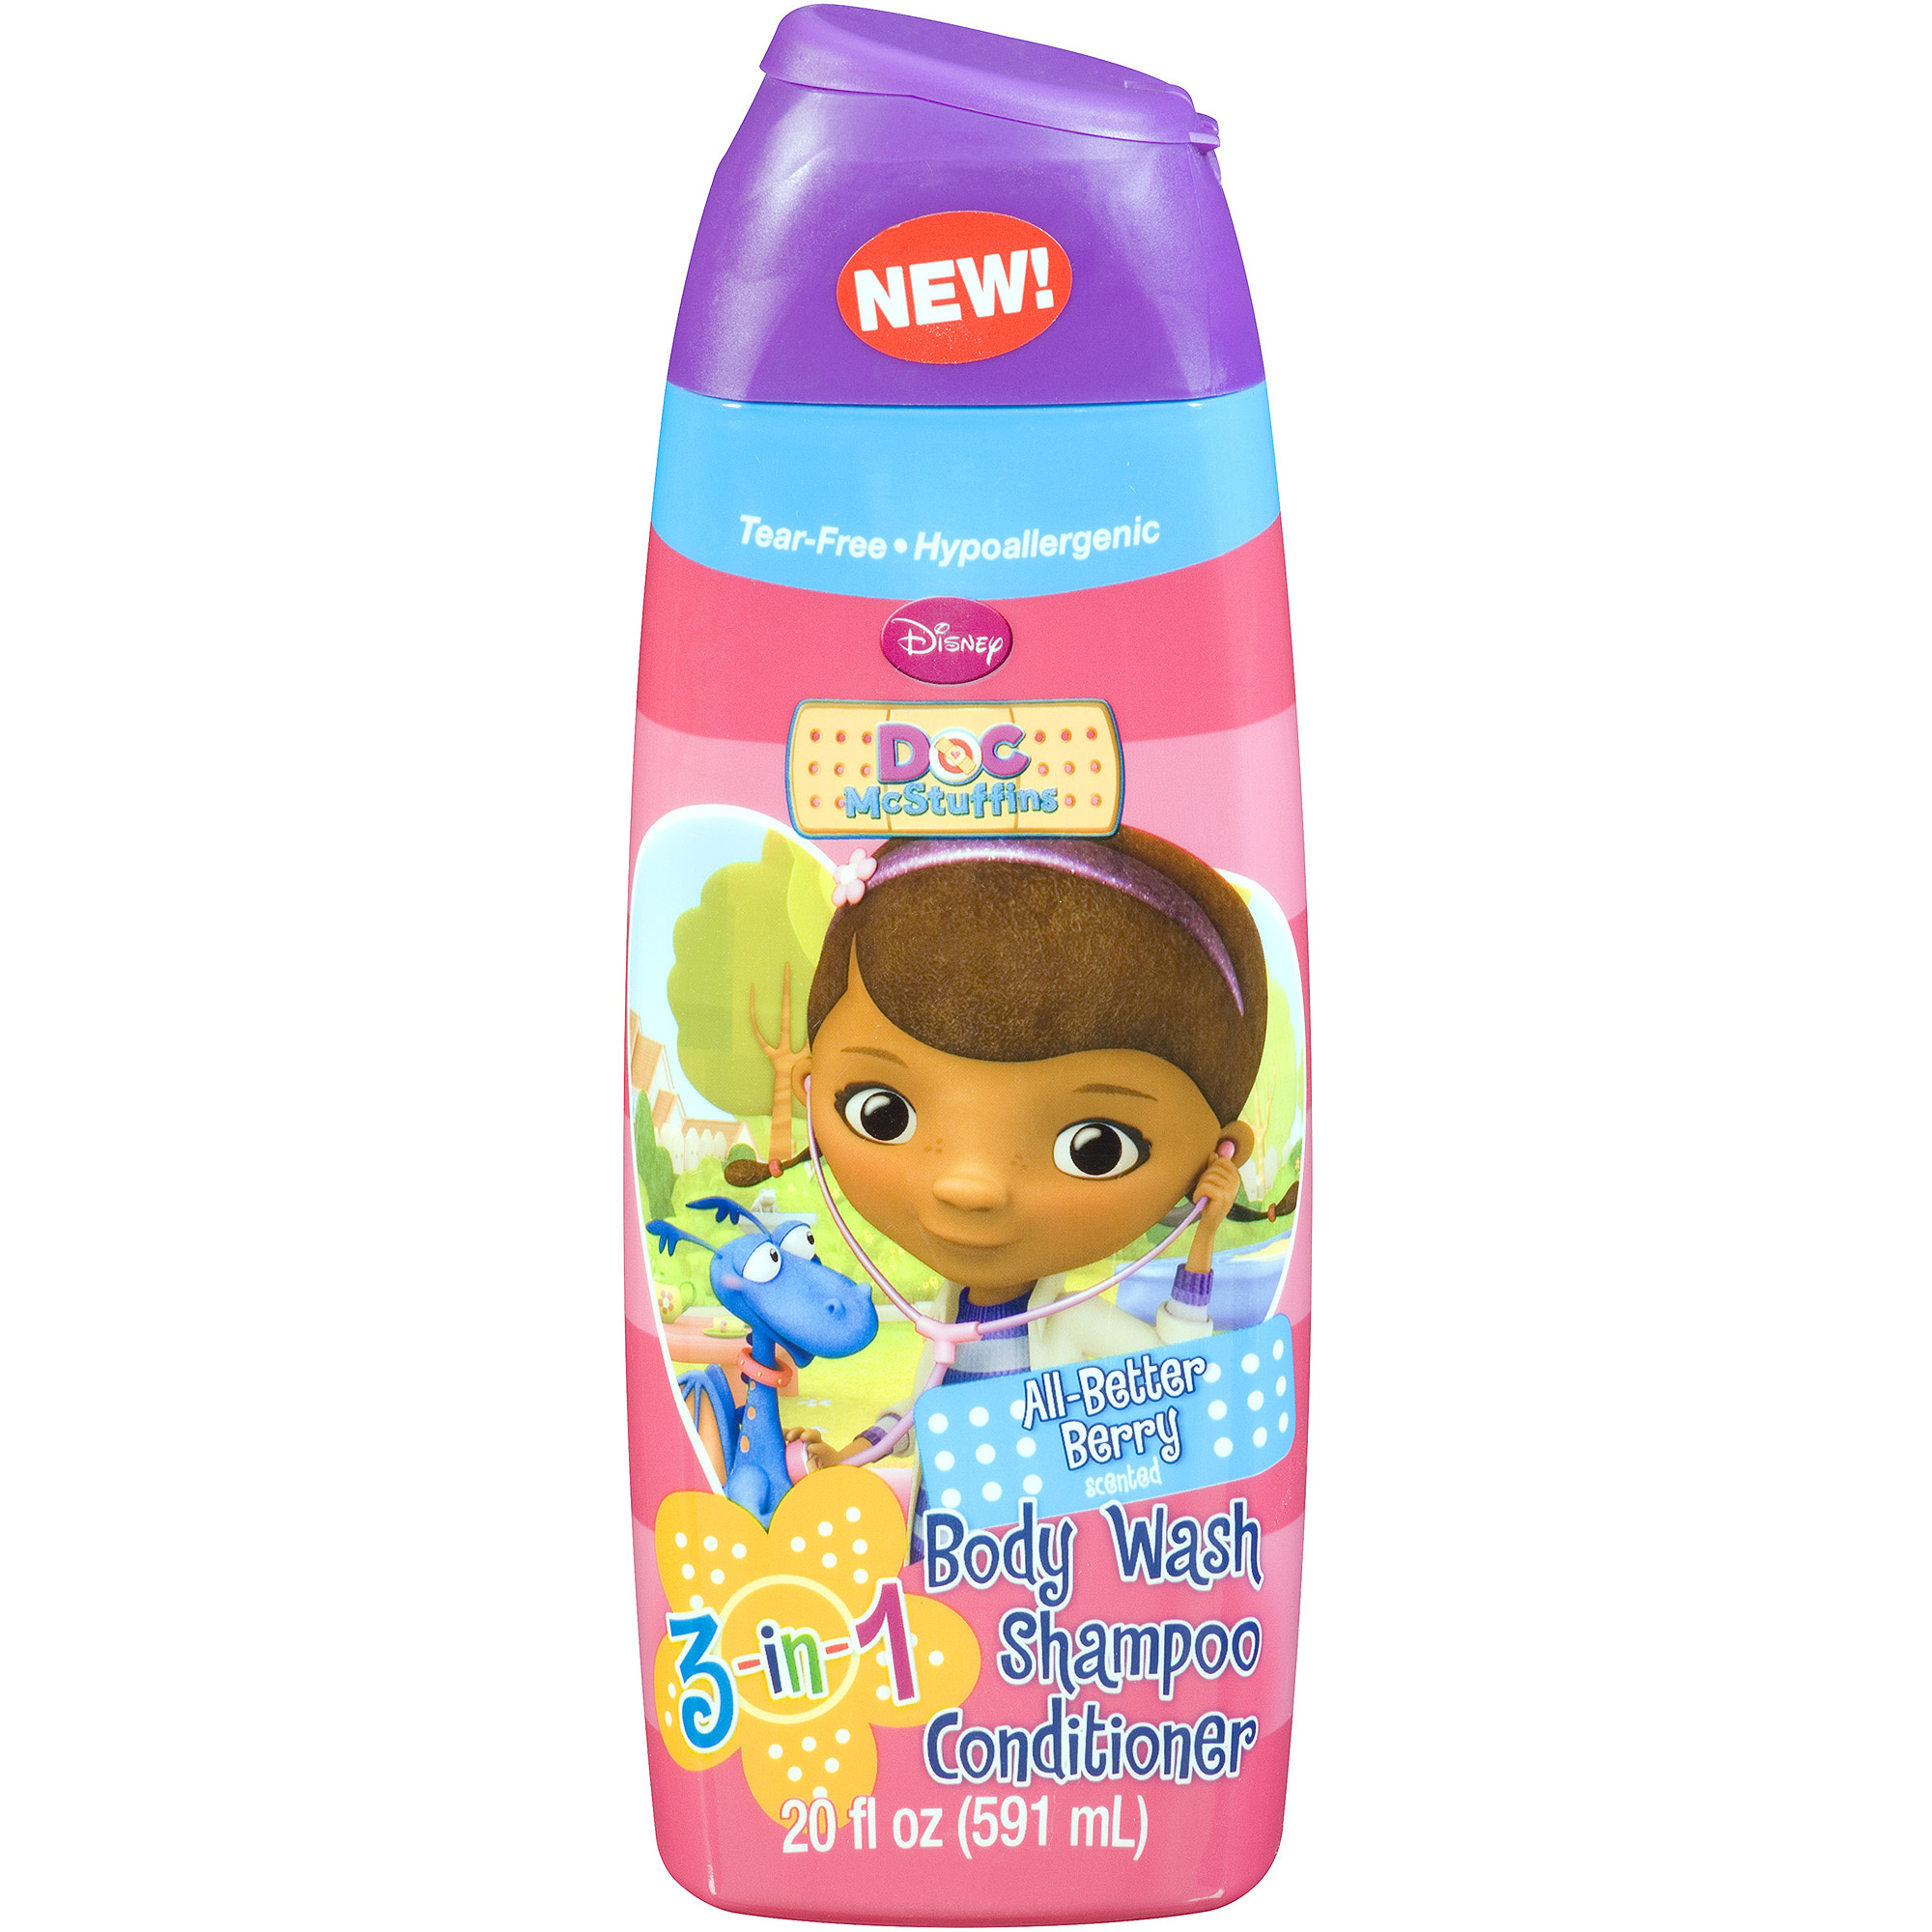 Disney Doc McStuffins All-Better Berry 3-in-1 Body Wash, Shampoo, and Conditioner, 20 fl oz